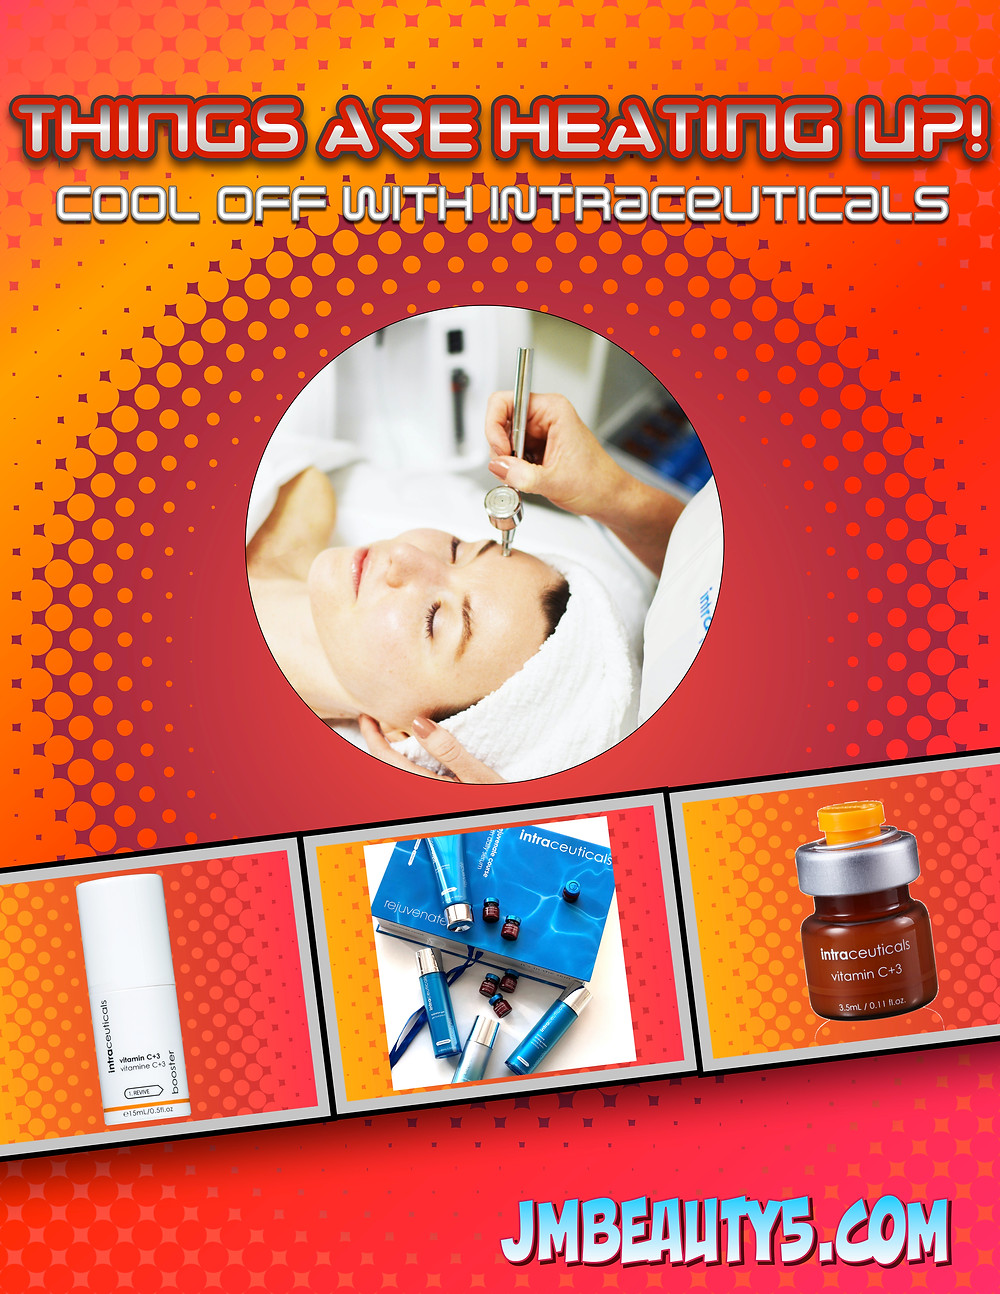 Intraceuticals Vitamin C